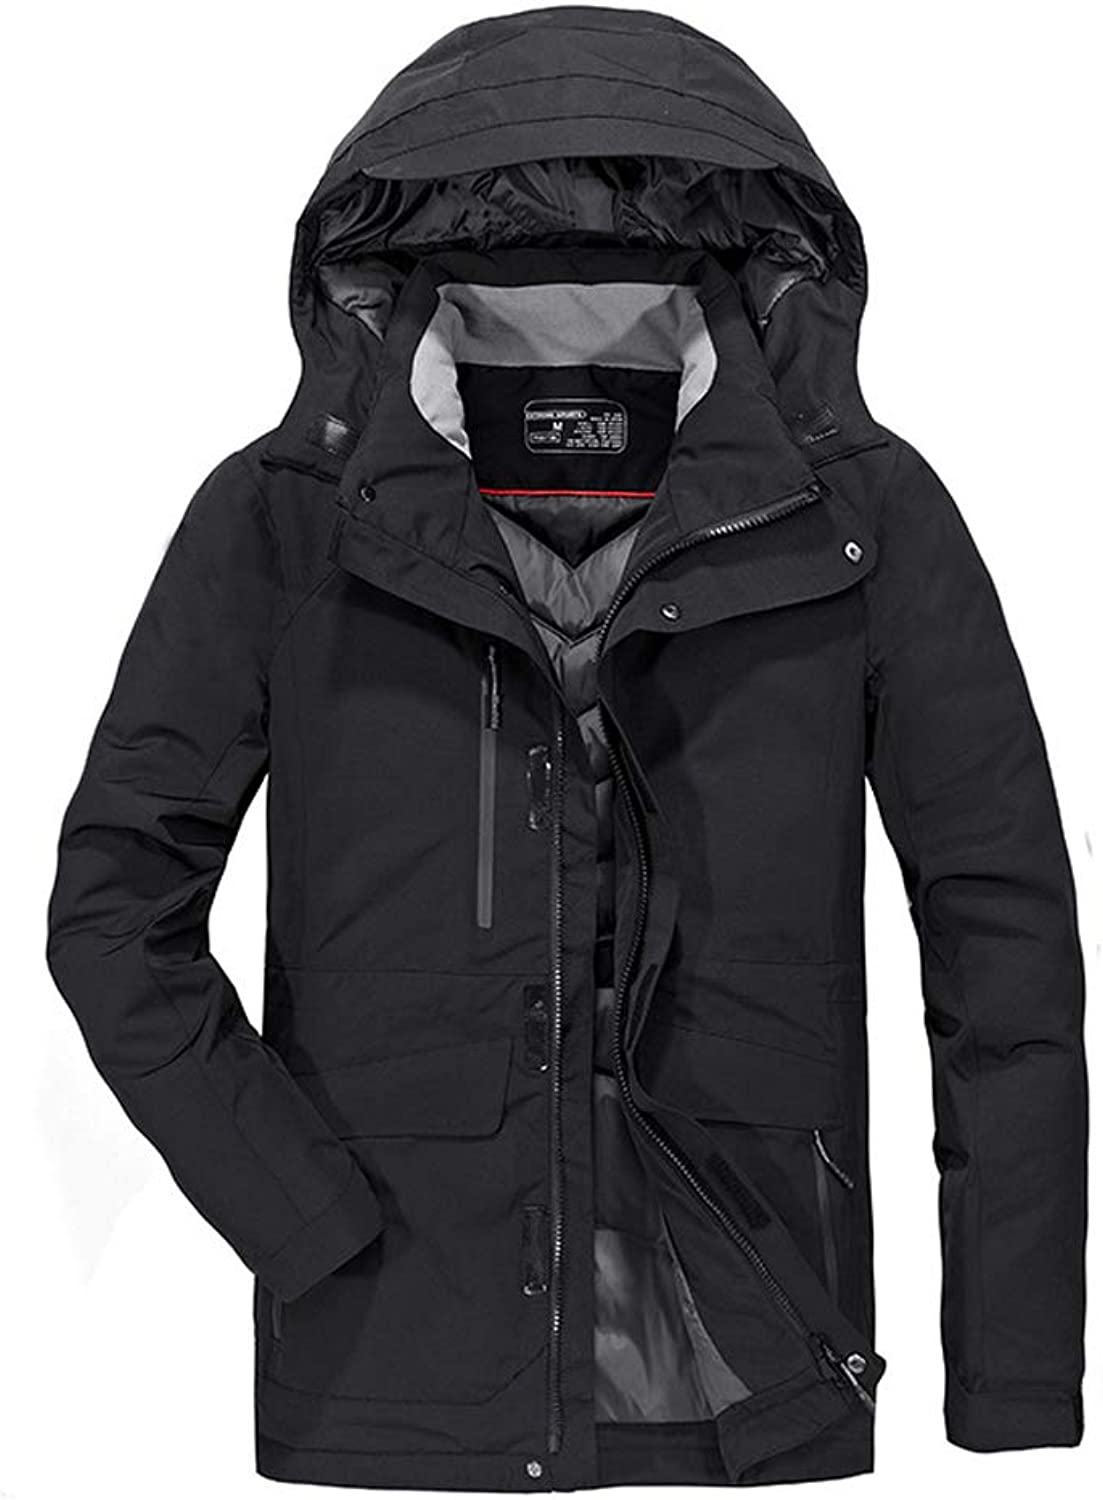 New Down Jacket, Men's Casual Short Thick Coat, Winter Outdoor Cold Warm Top, Suitable for Cold Weather (color   Black, Size   XL)